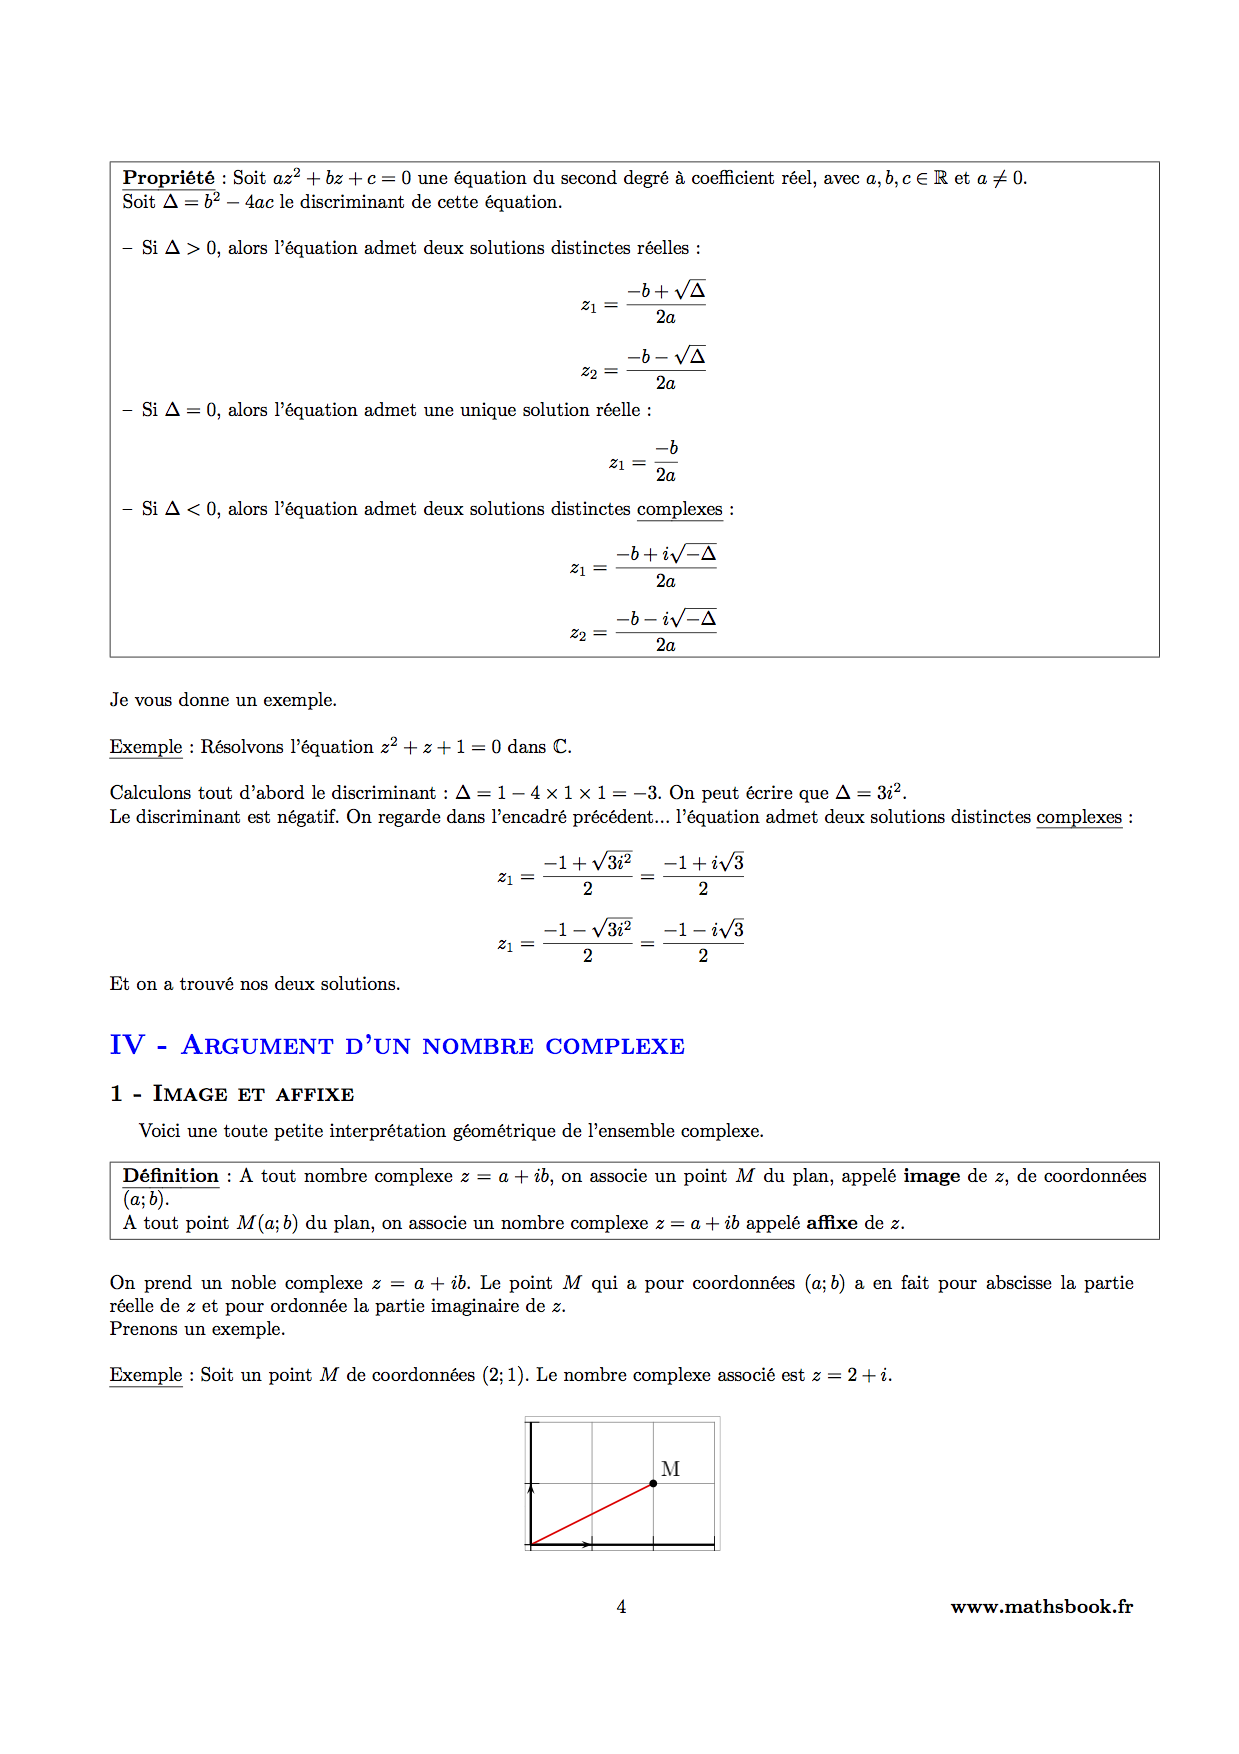 resolution equation second degre complexe